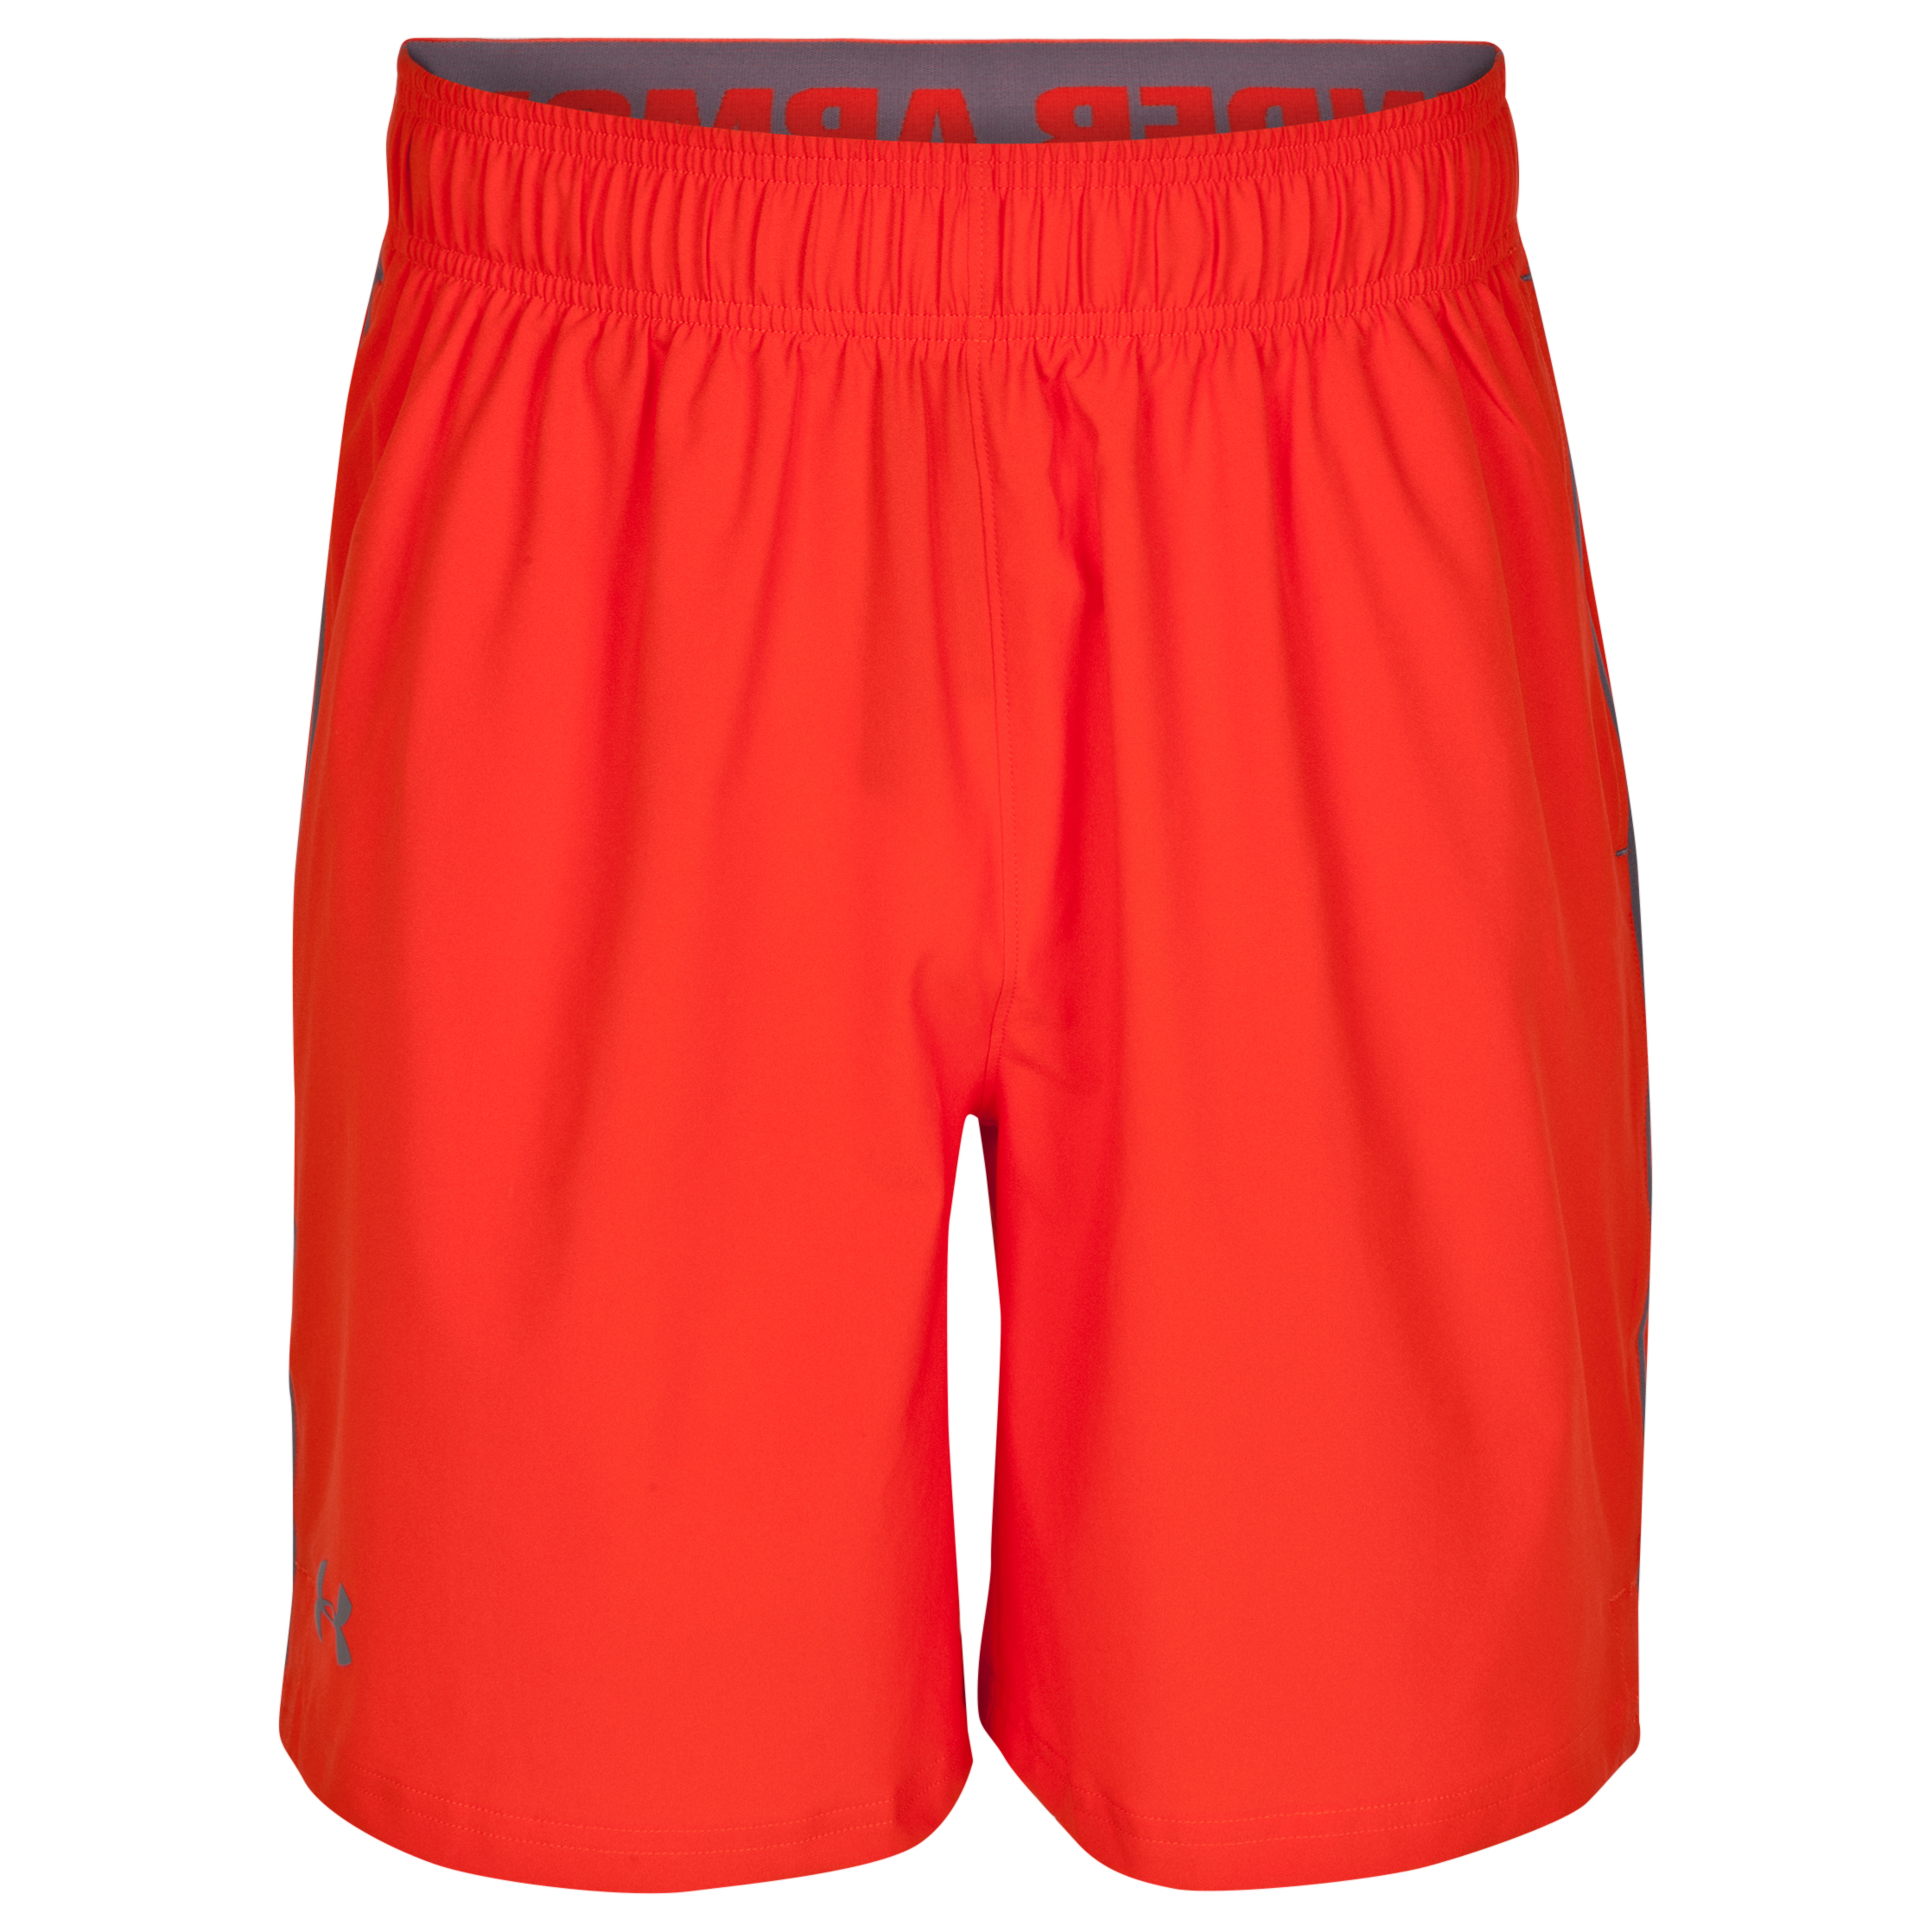 Under Armour Mirage 8 Inch Short Red